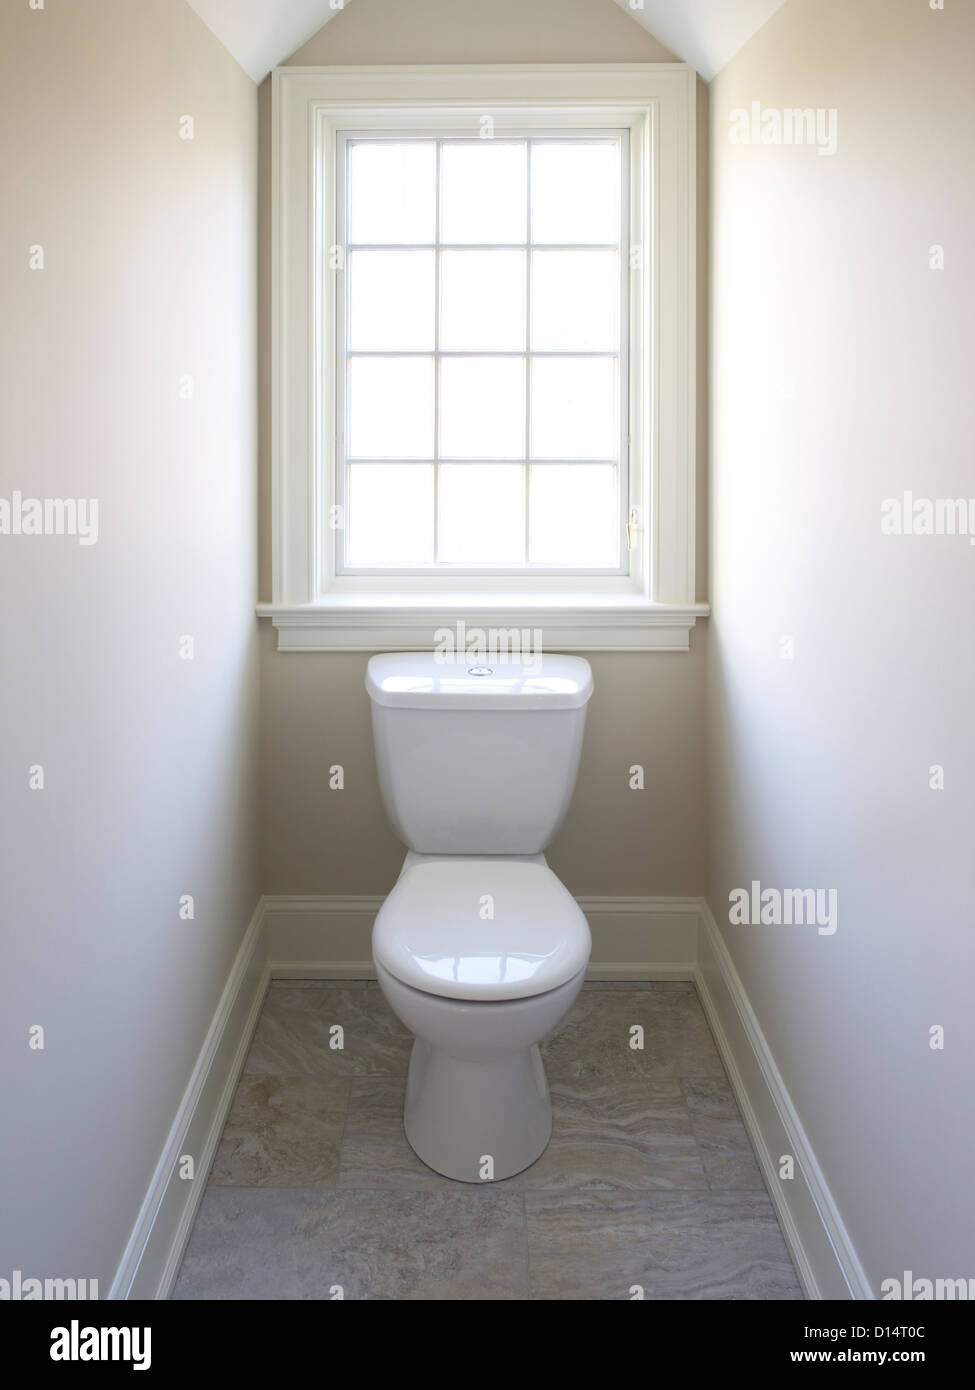 Toilet  Window In Very Small Room Stock Photo Royalty